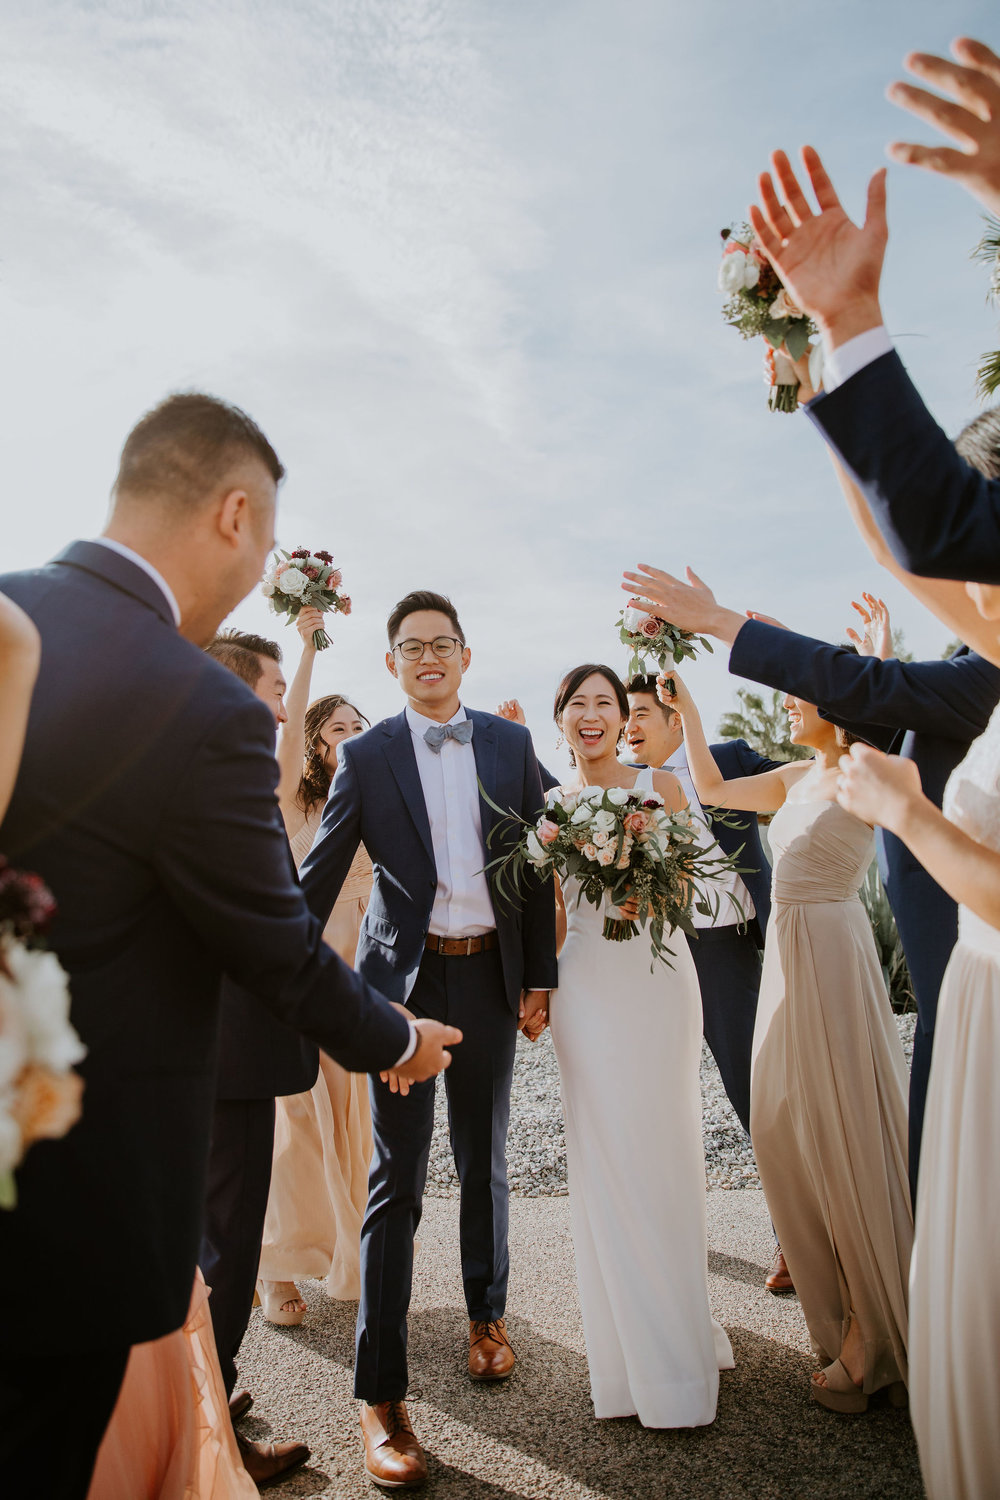 Palm Springs Lautner Compound Wedding May Iosotaluno Photography 127.jpg